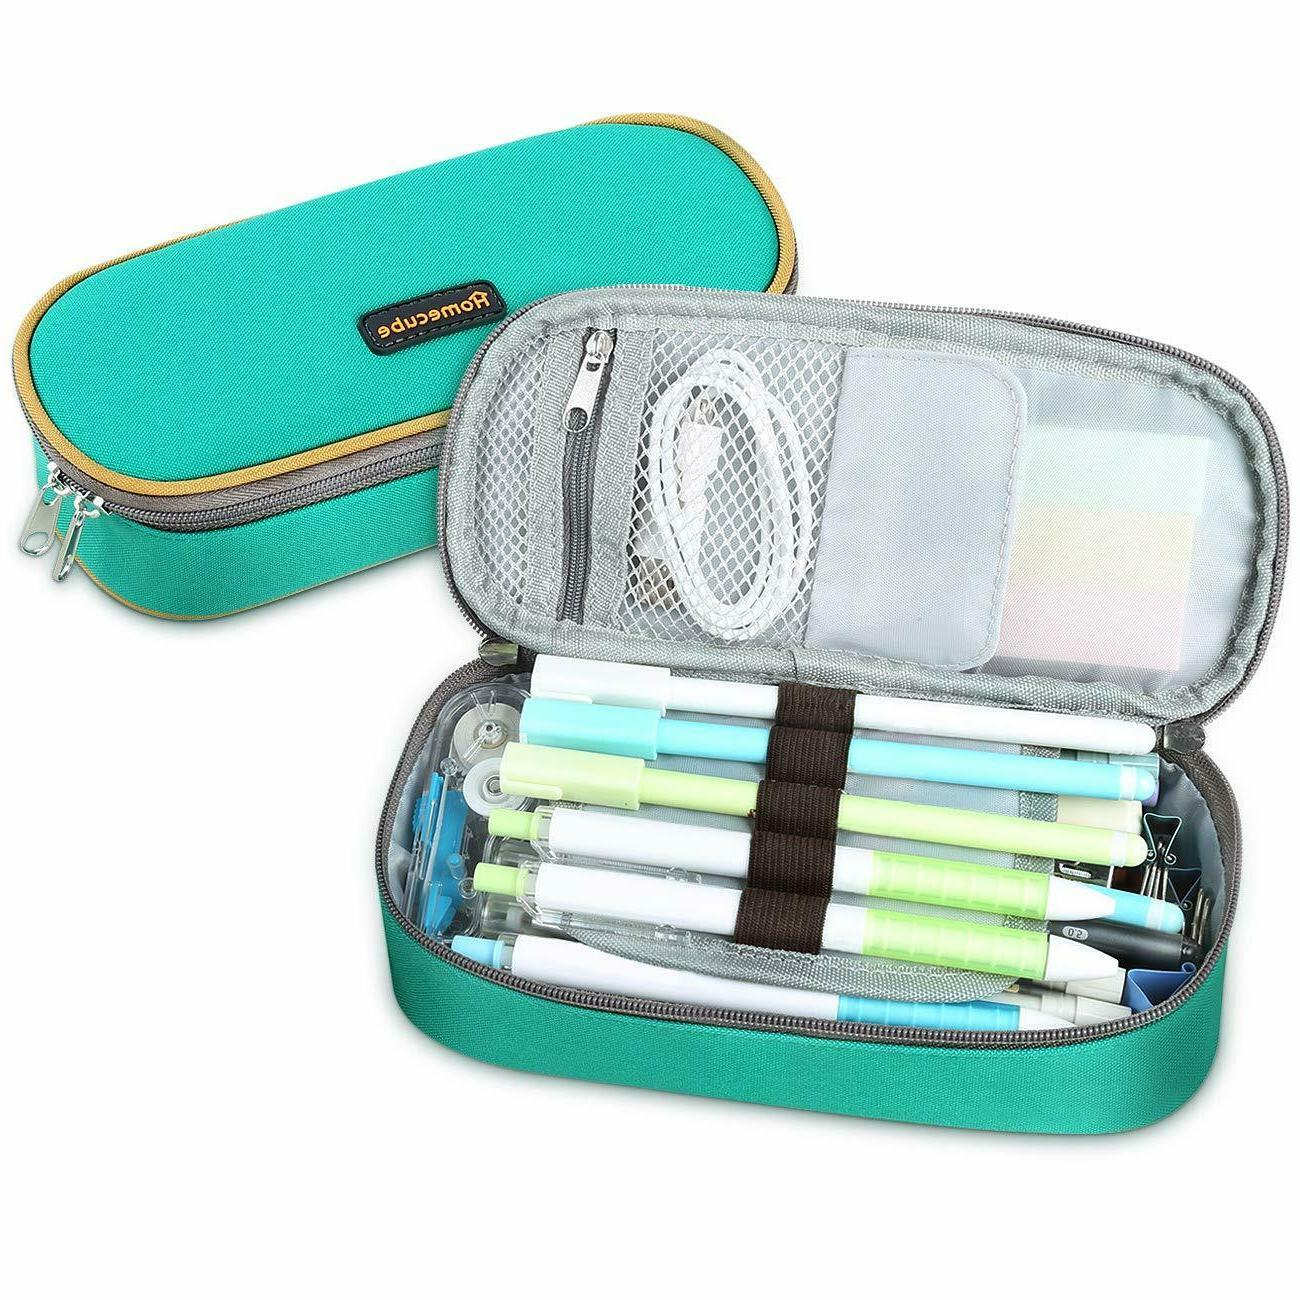 Homecube Pencil Case Big Capacity Makeup Pen Pouch Durable S